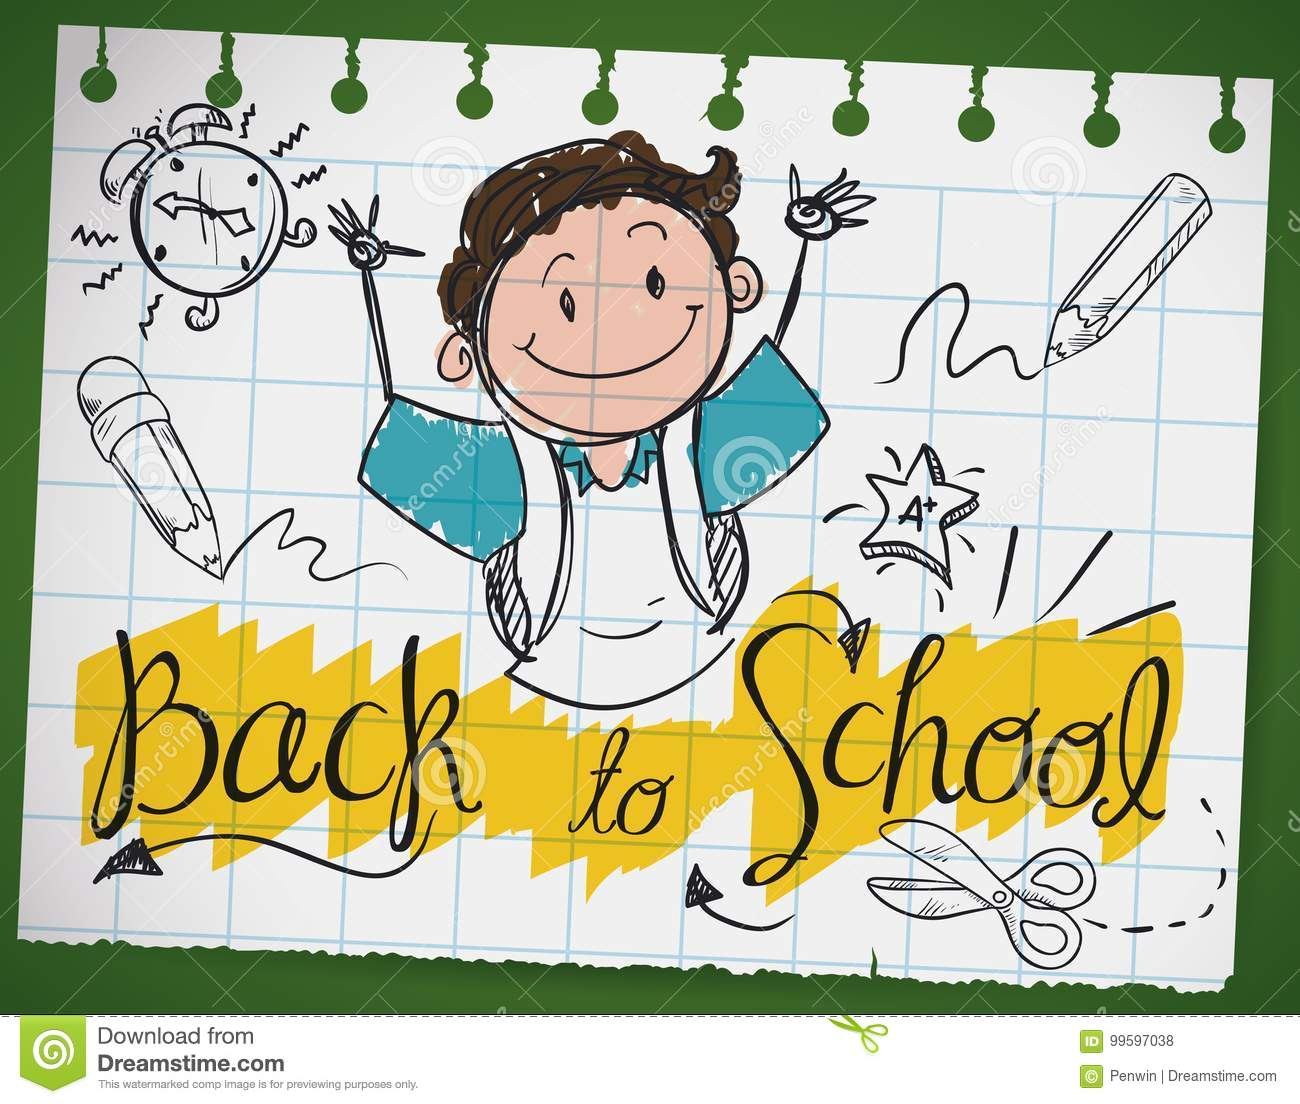 Doodle Drawing in a Notebook Paper for Back to School, Vector Illustration